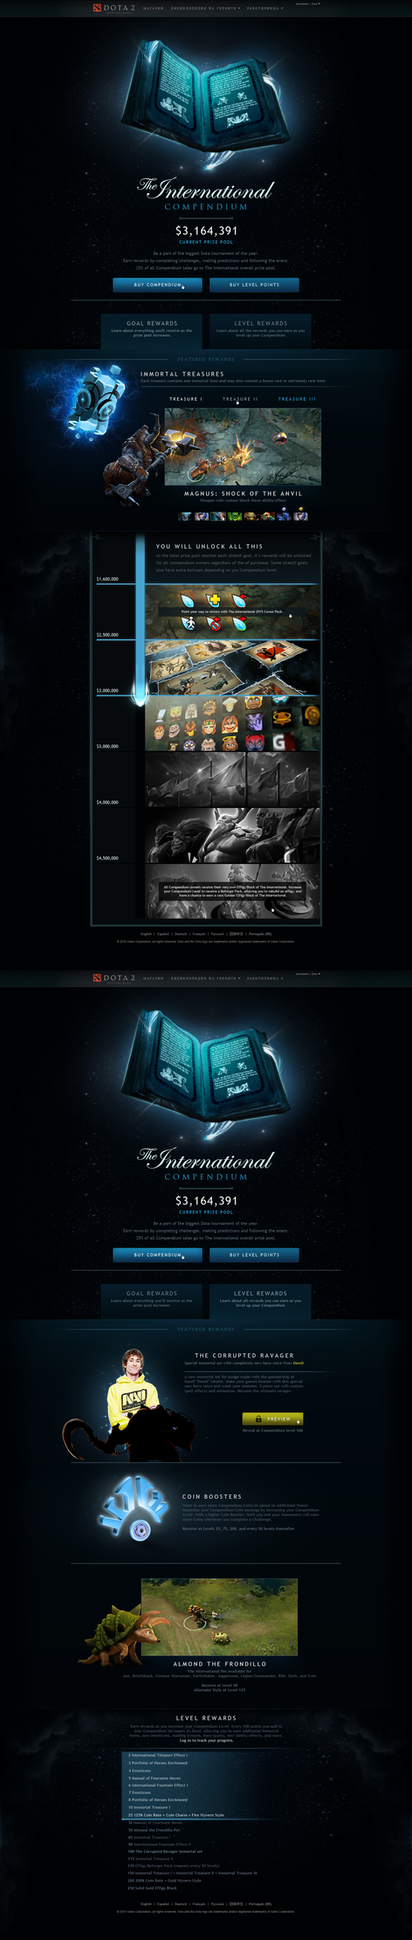 Dota 2 The International Inspired Design by Agresidy